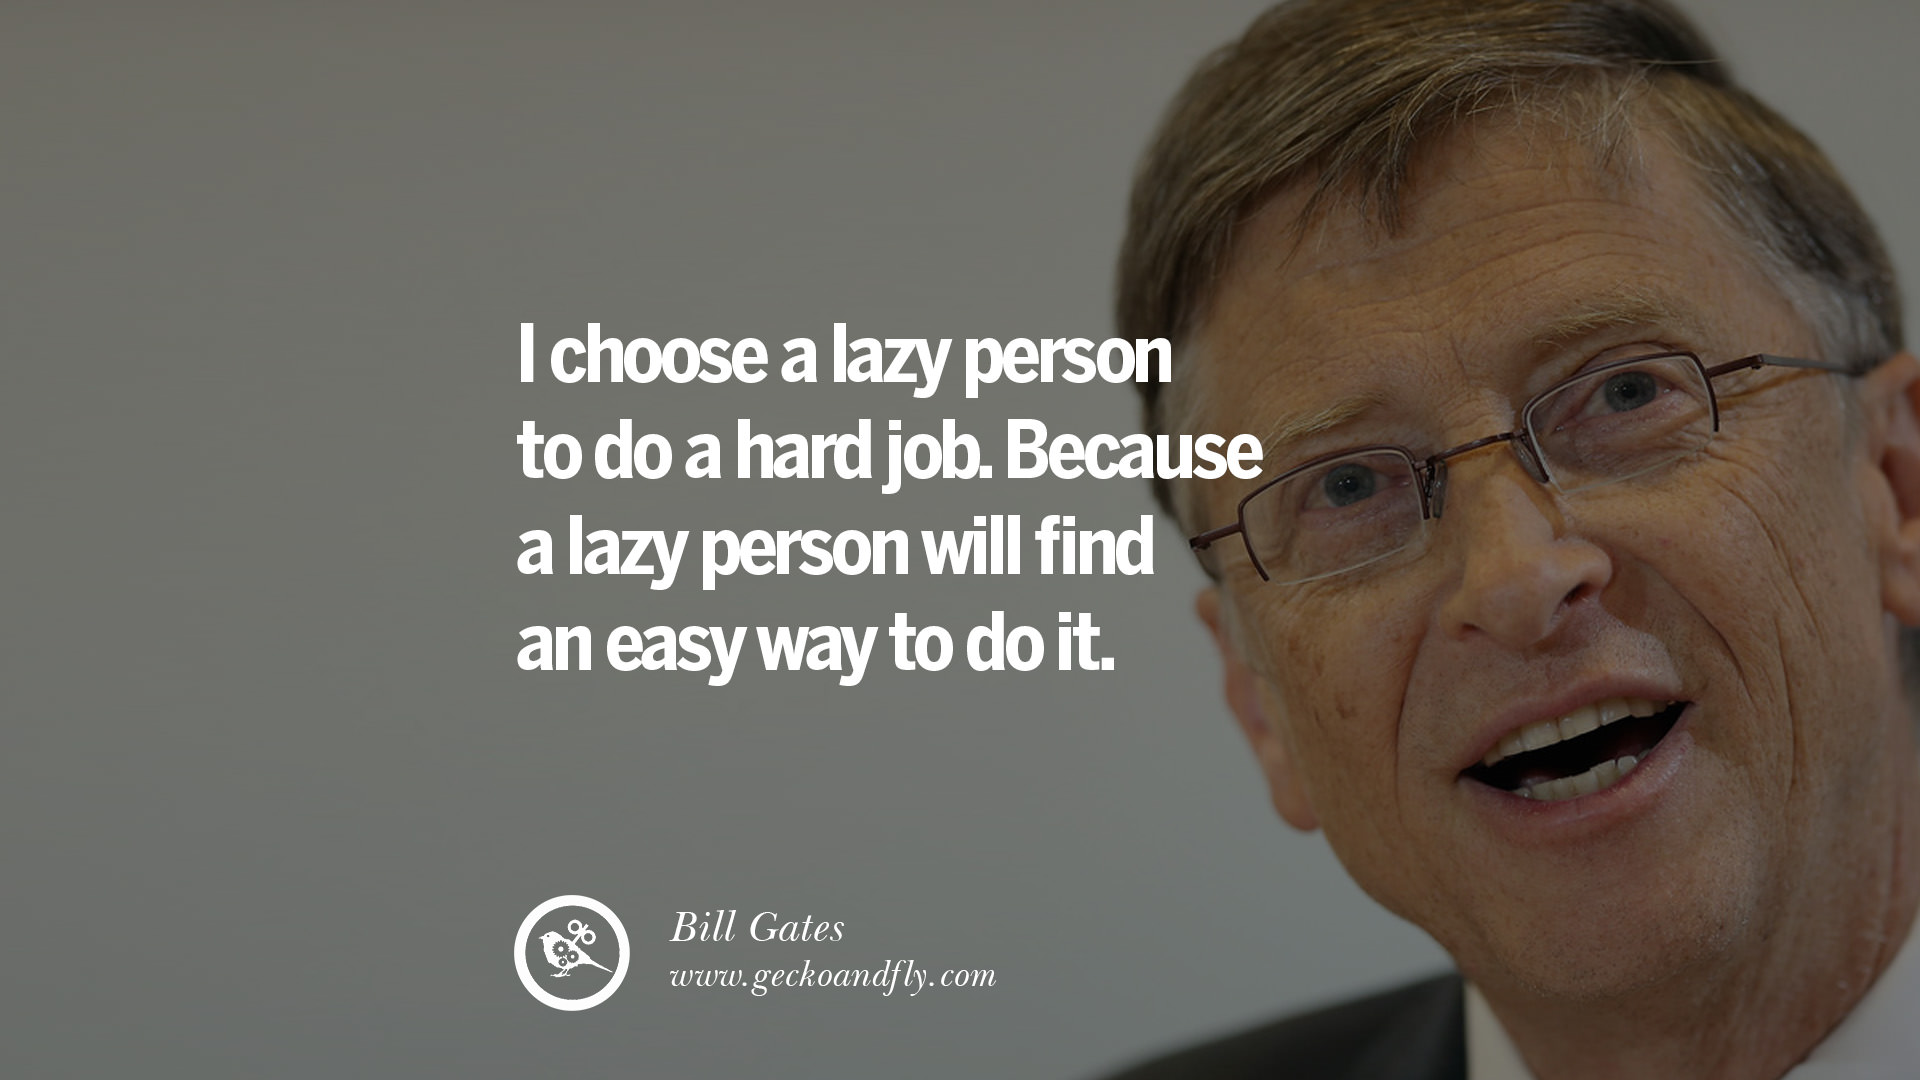 High Quality Resolution Wallpapers Inspirational Reading Quotes 15 Inspiring Bill Gates Quotes On Success And Life